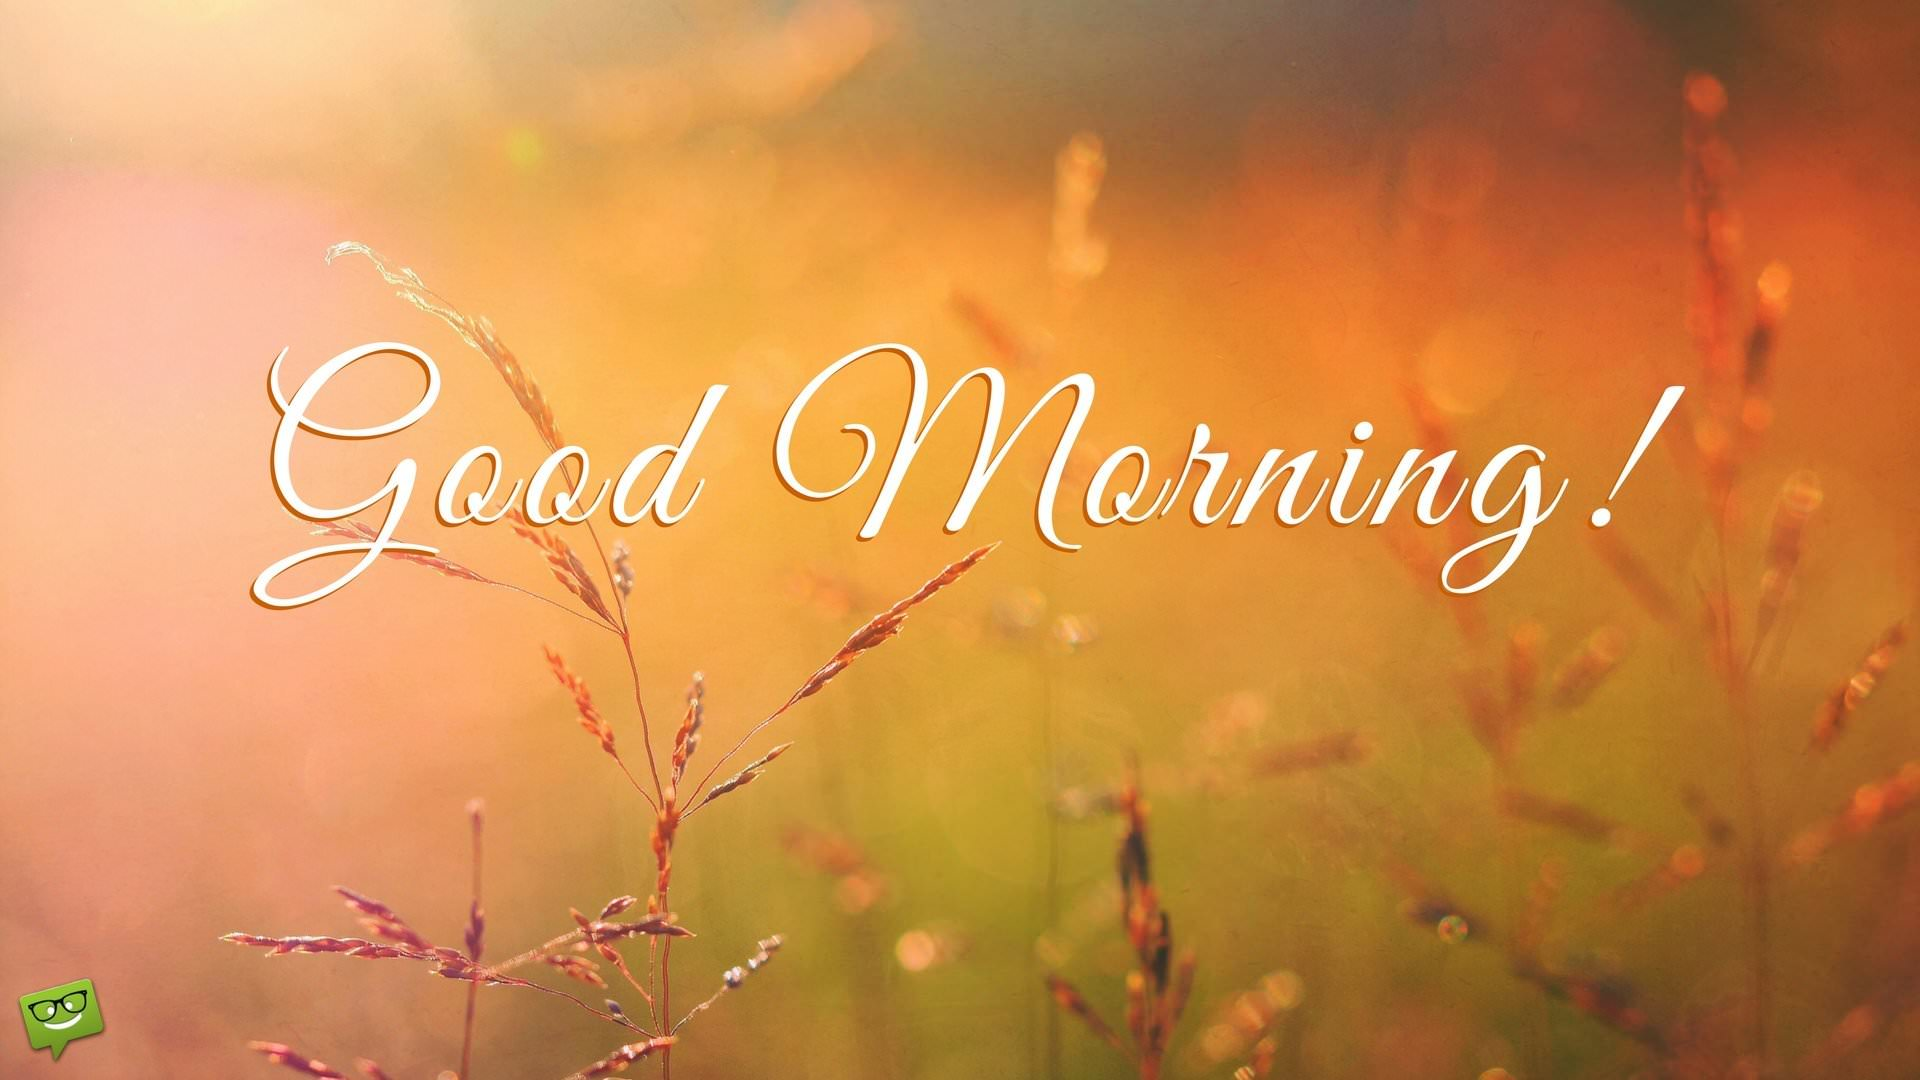 Good Morning Everyone Executive Decision : Wake up seize the day positive good morning quotes